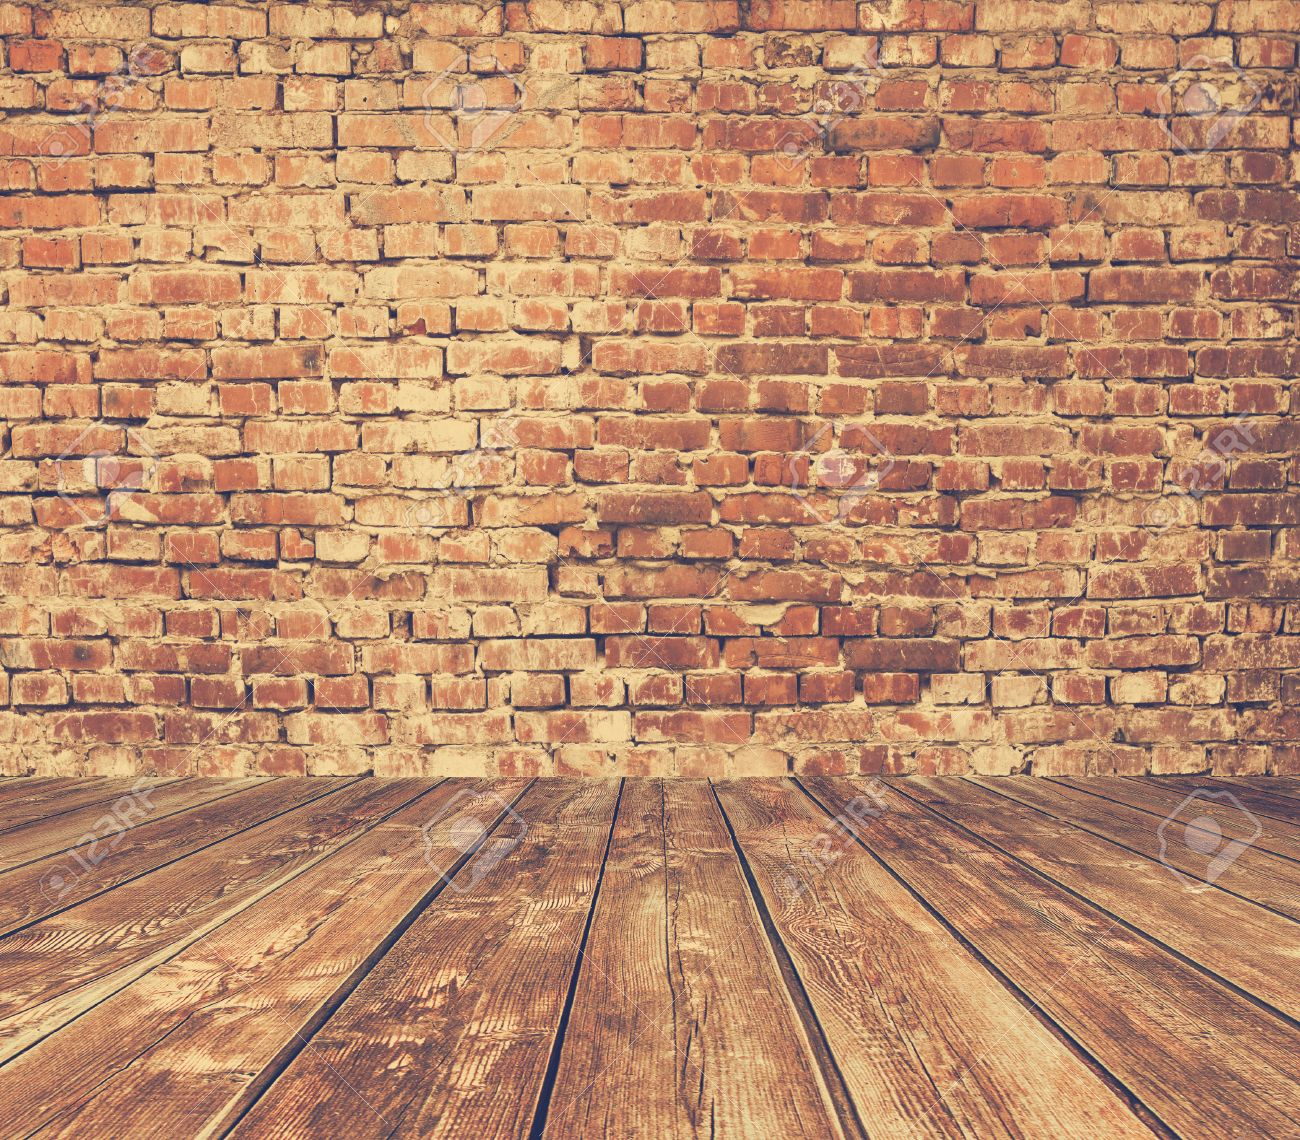 Plain wood table with hipster brick wall background stock photo - Old Room With Brick Wall Vintage Background Retro Film Filtered